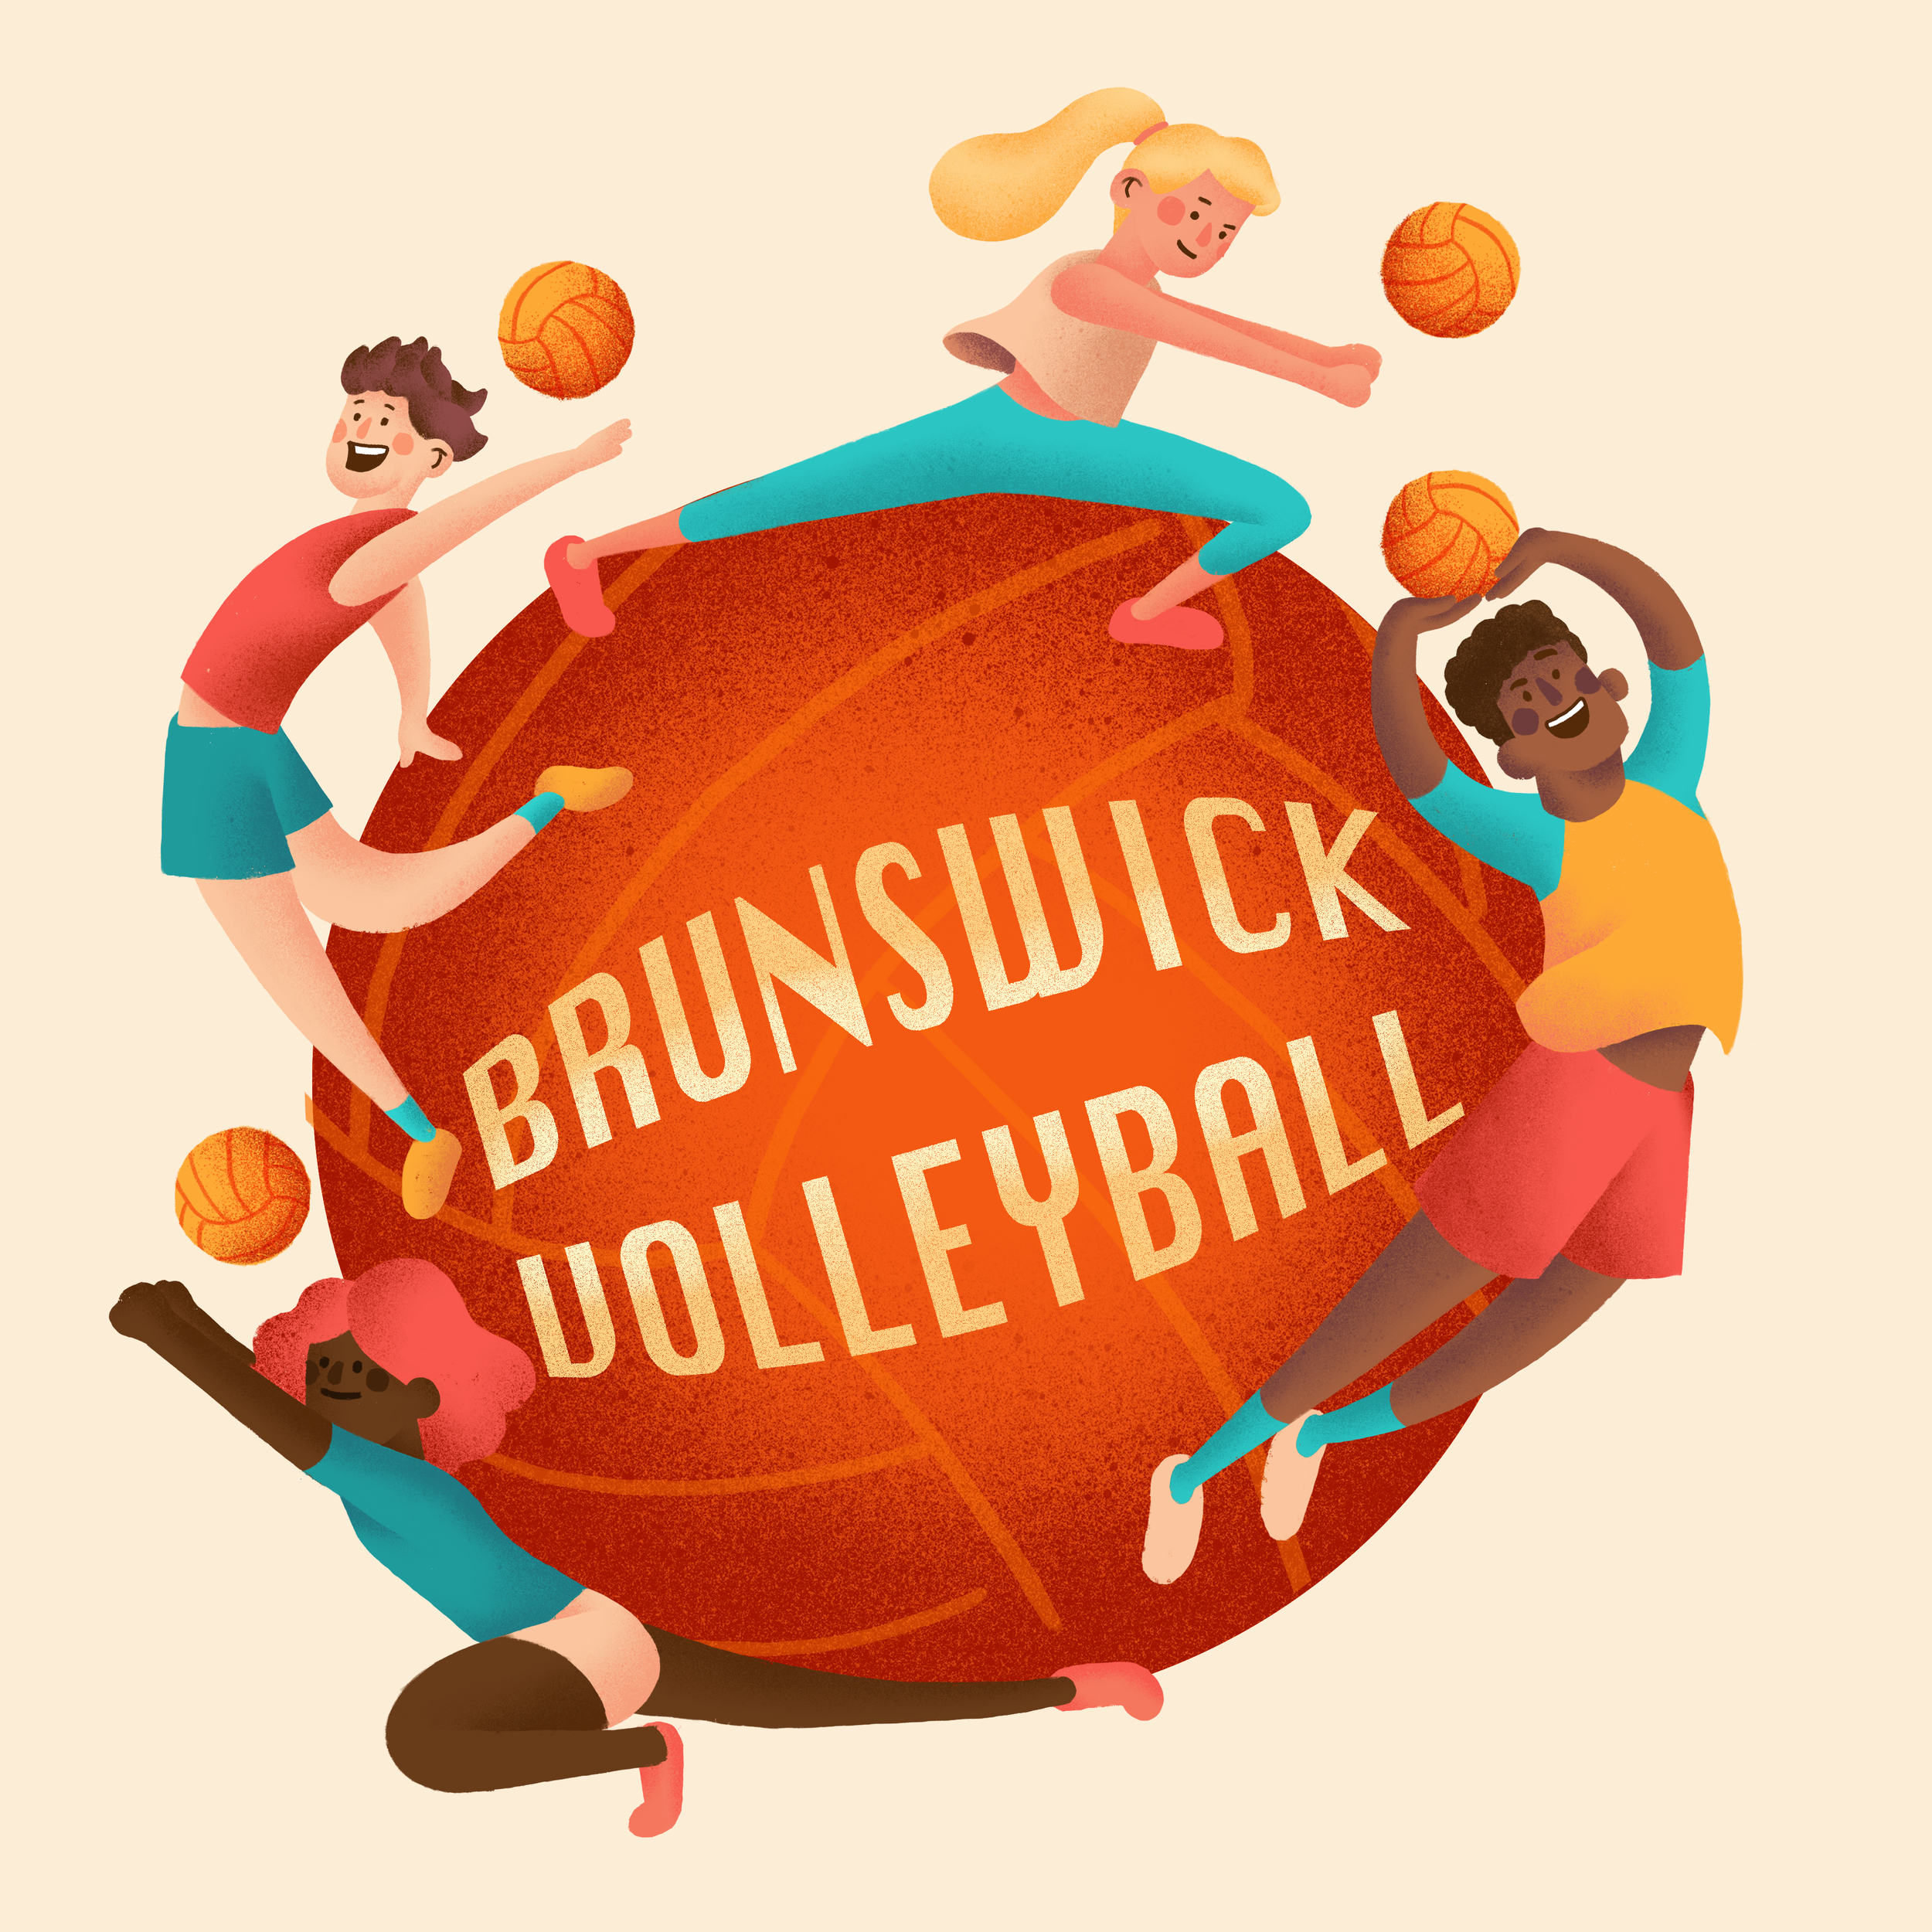 Commissioned Self-directed work, 2019   Volleyball t-shirt illustration for Brunswick Volleyball